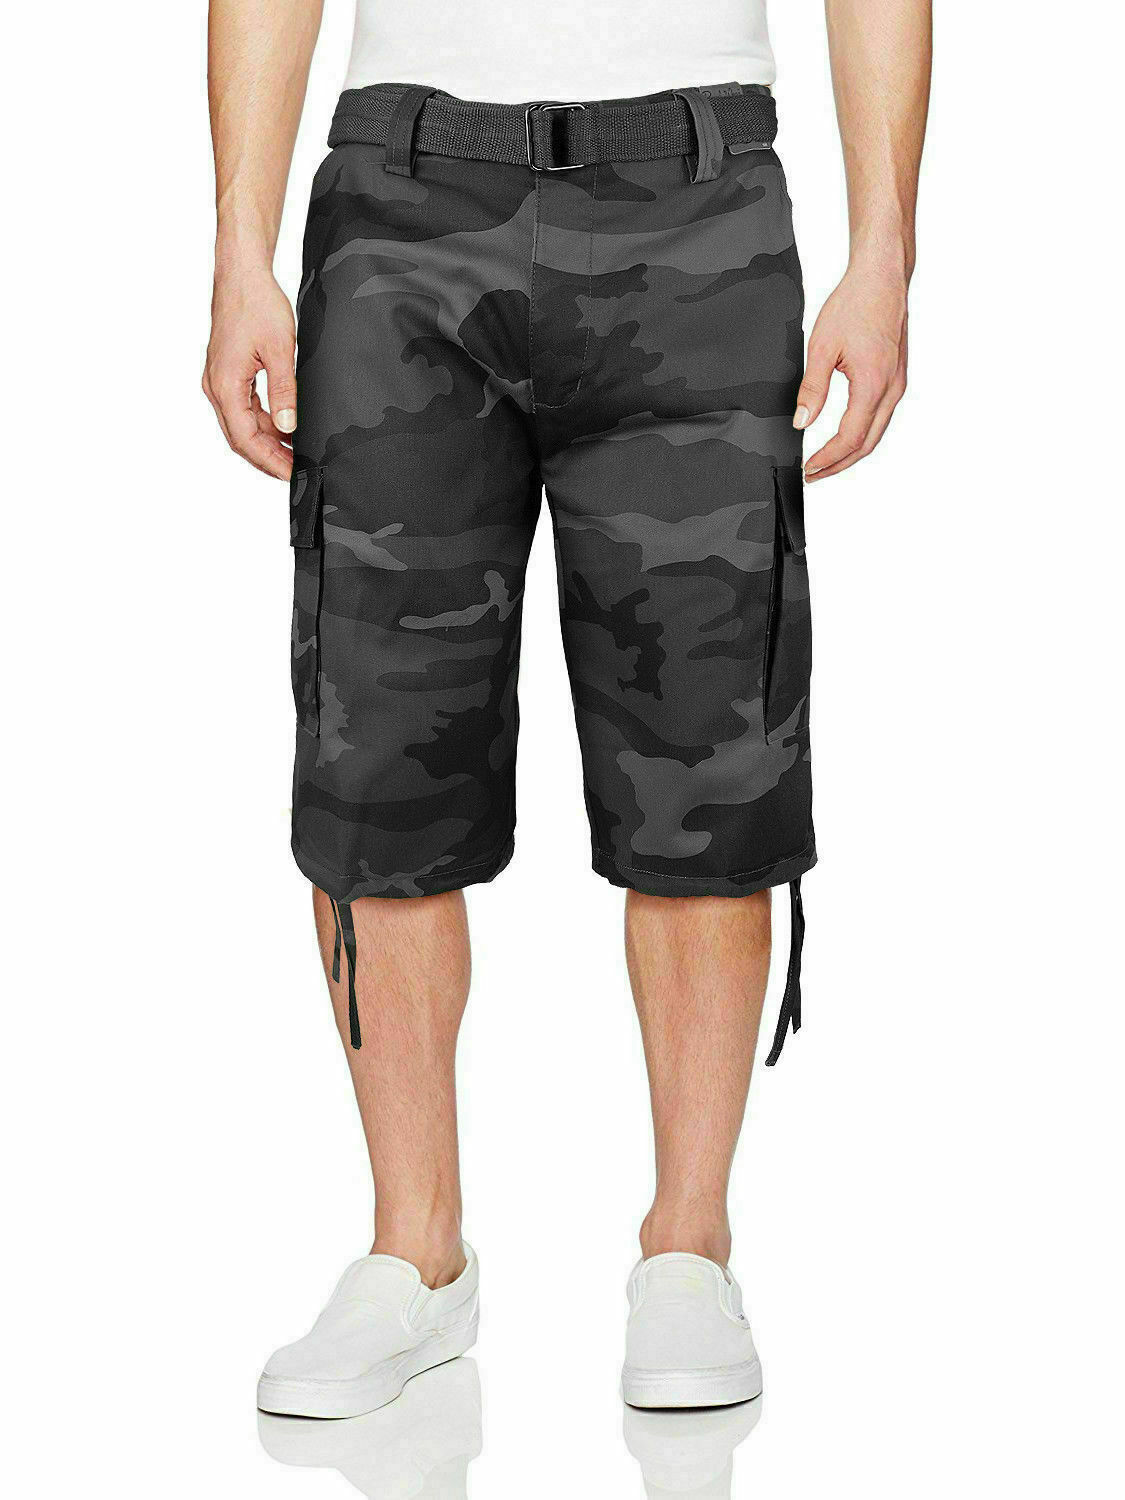 Men's Military Army Camo Camouflage Slim Fit Cargo Shorts With Belt - Size 40